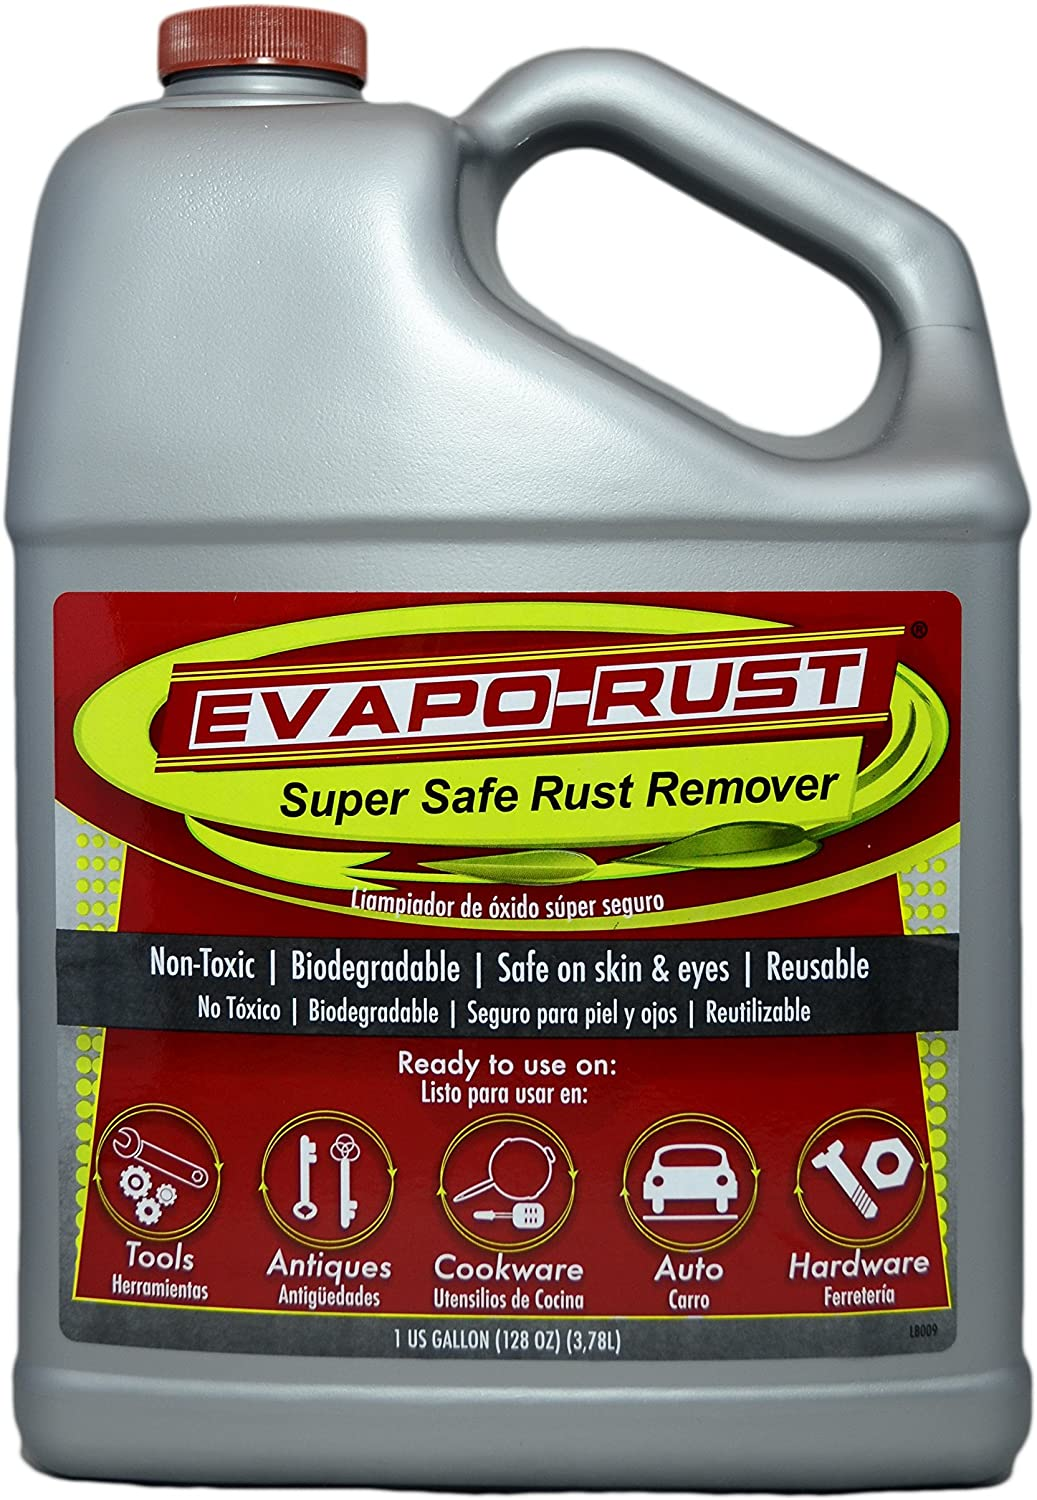 Evapo-Rust The Original Super Safe Rust Remover review